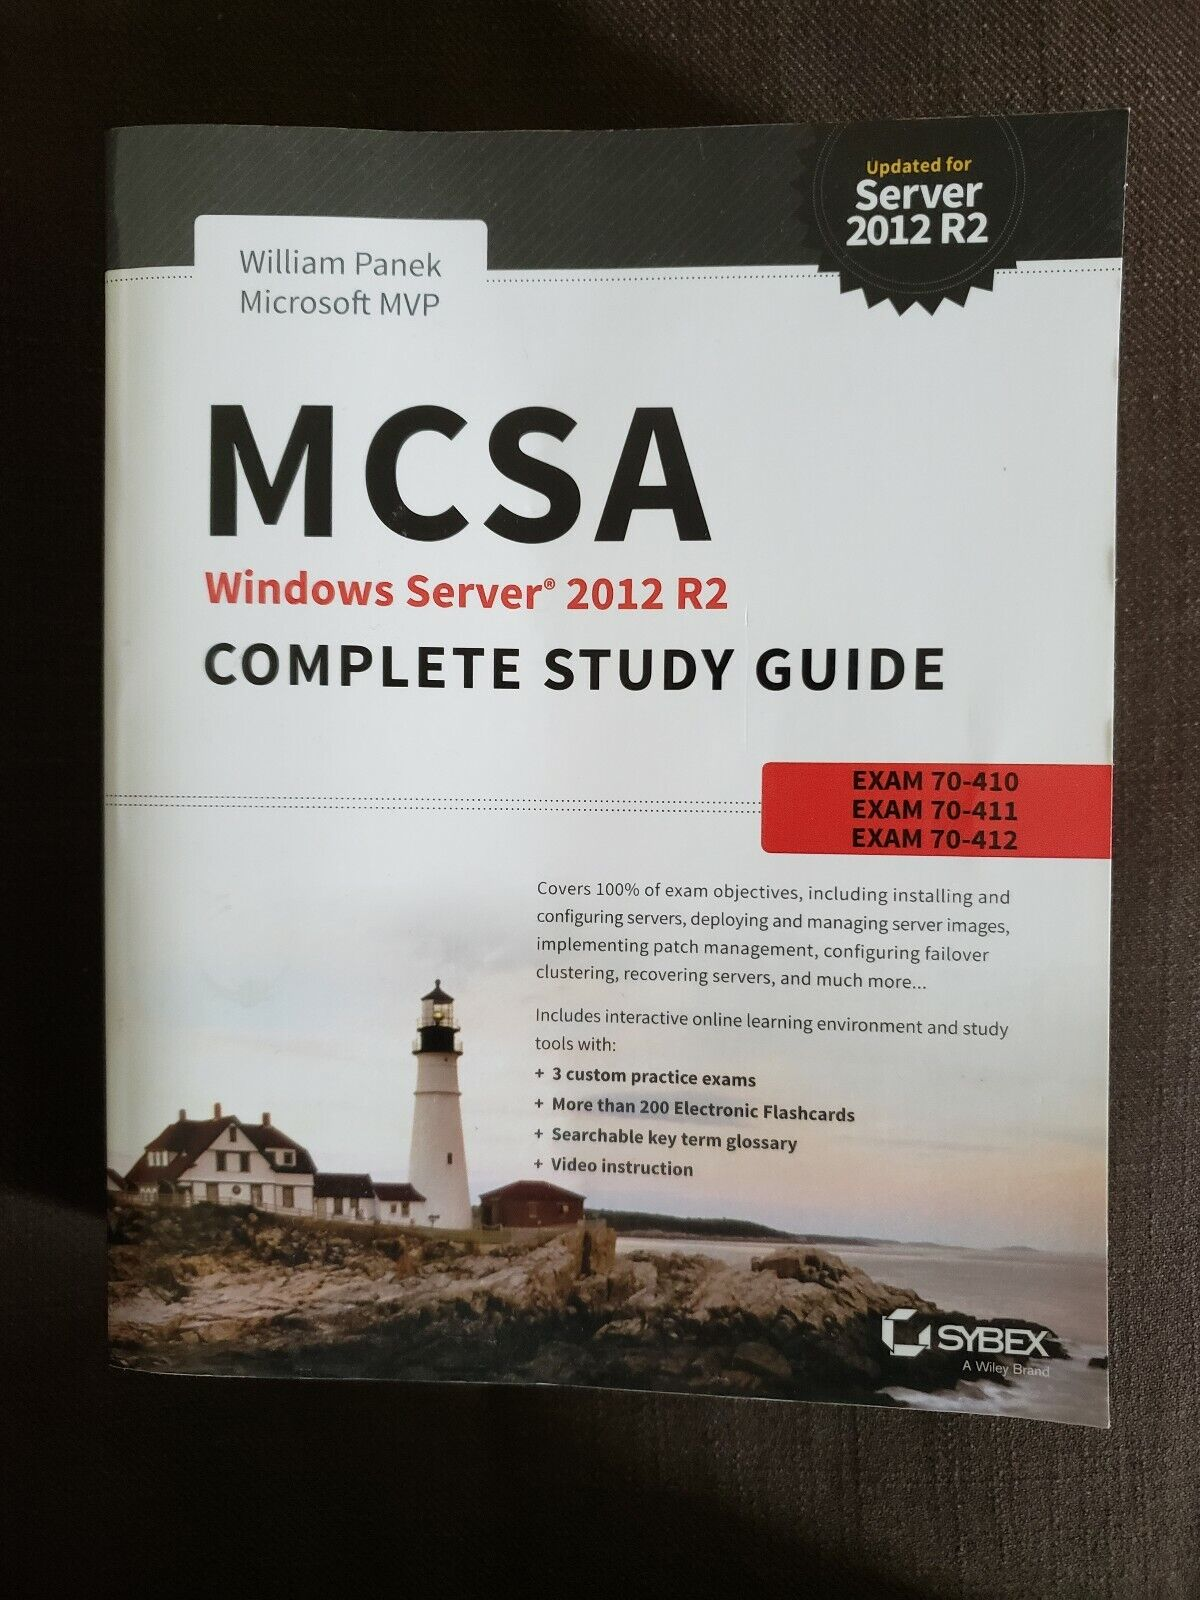 70-412 MCSA Windows Server 2012 R2 Complete Study Guide: Exams 70-410 70-411 and 70-417